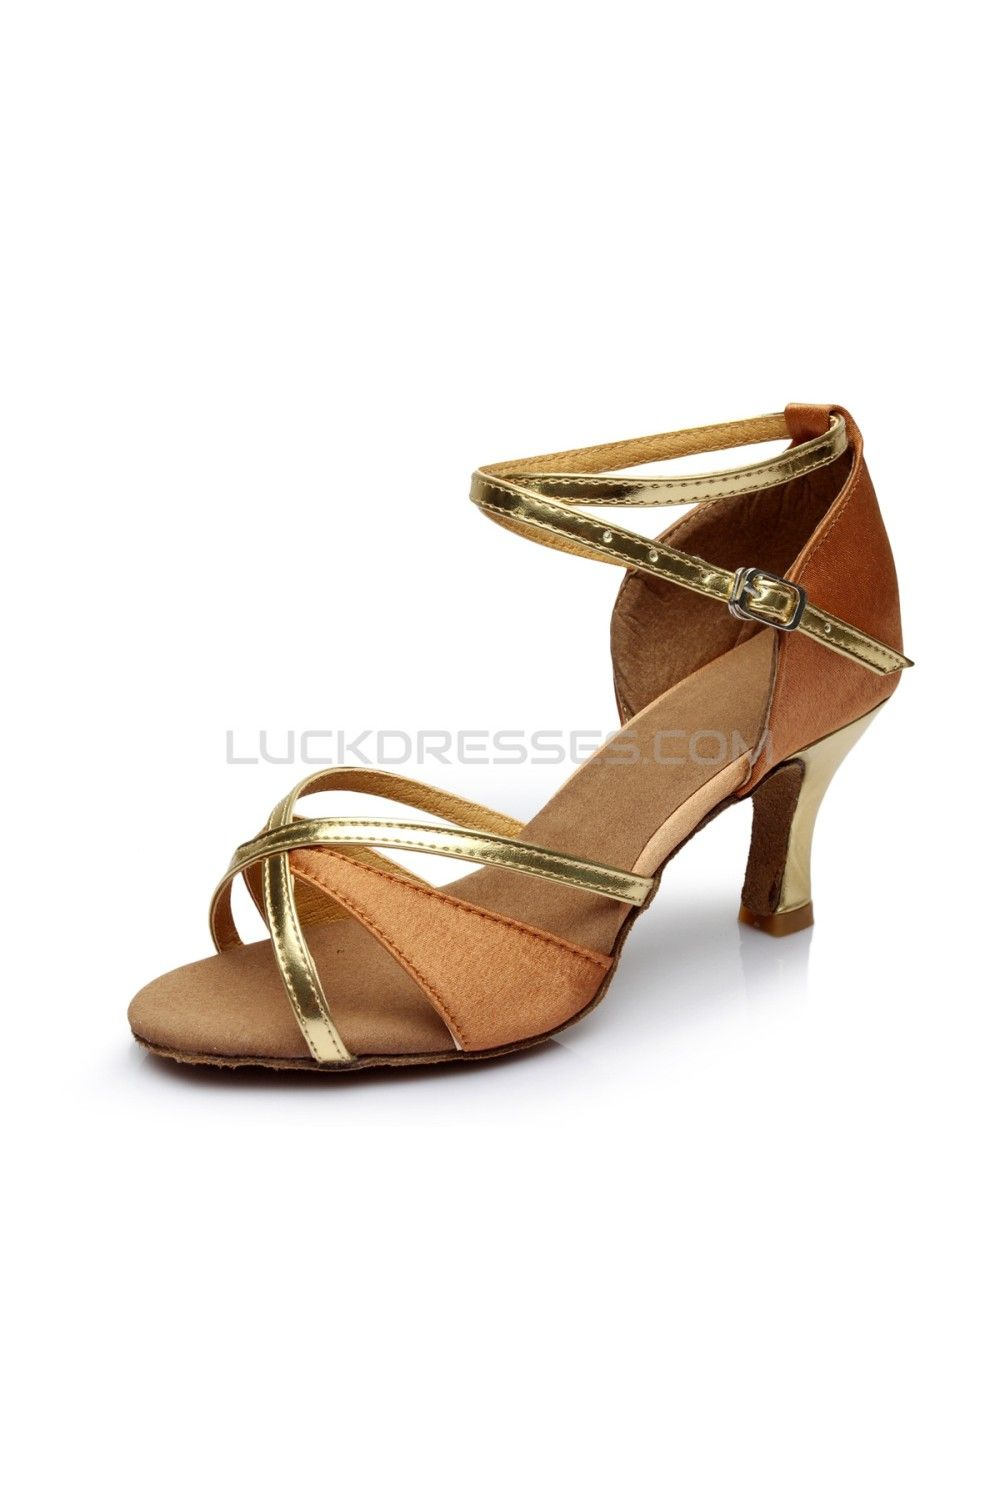 Women S Brown Gold Satin Heels Sandals Latin Salsa With Ankle Strap Dance Shoes D602019 Salsa Dance Shoes Latin Shoes Ballroom Dance Shoes